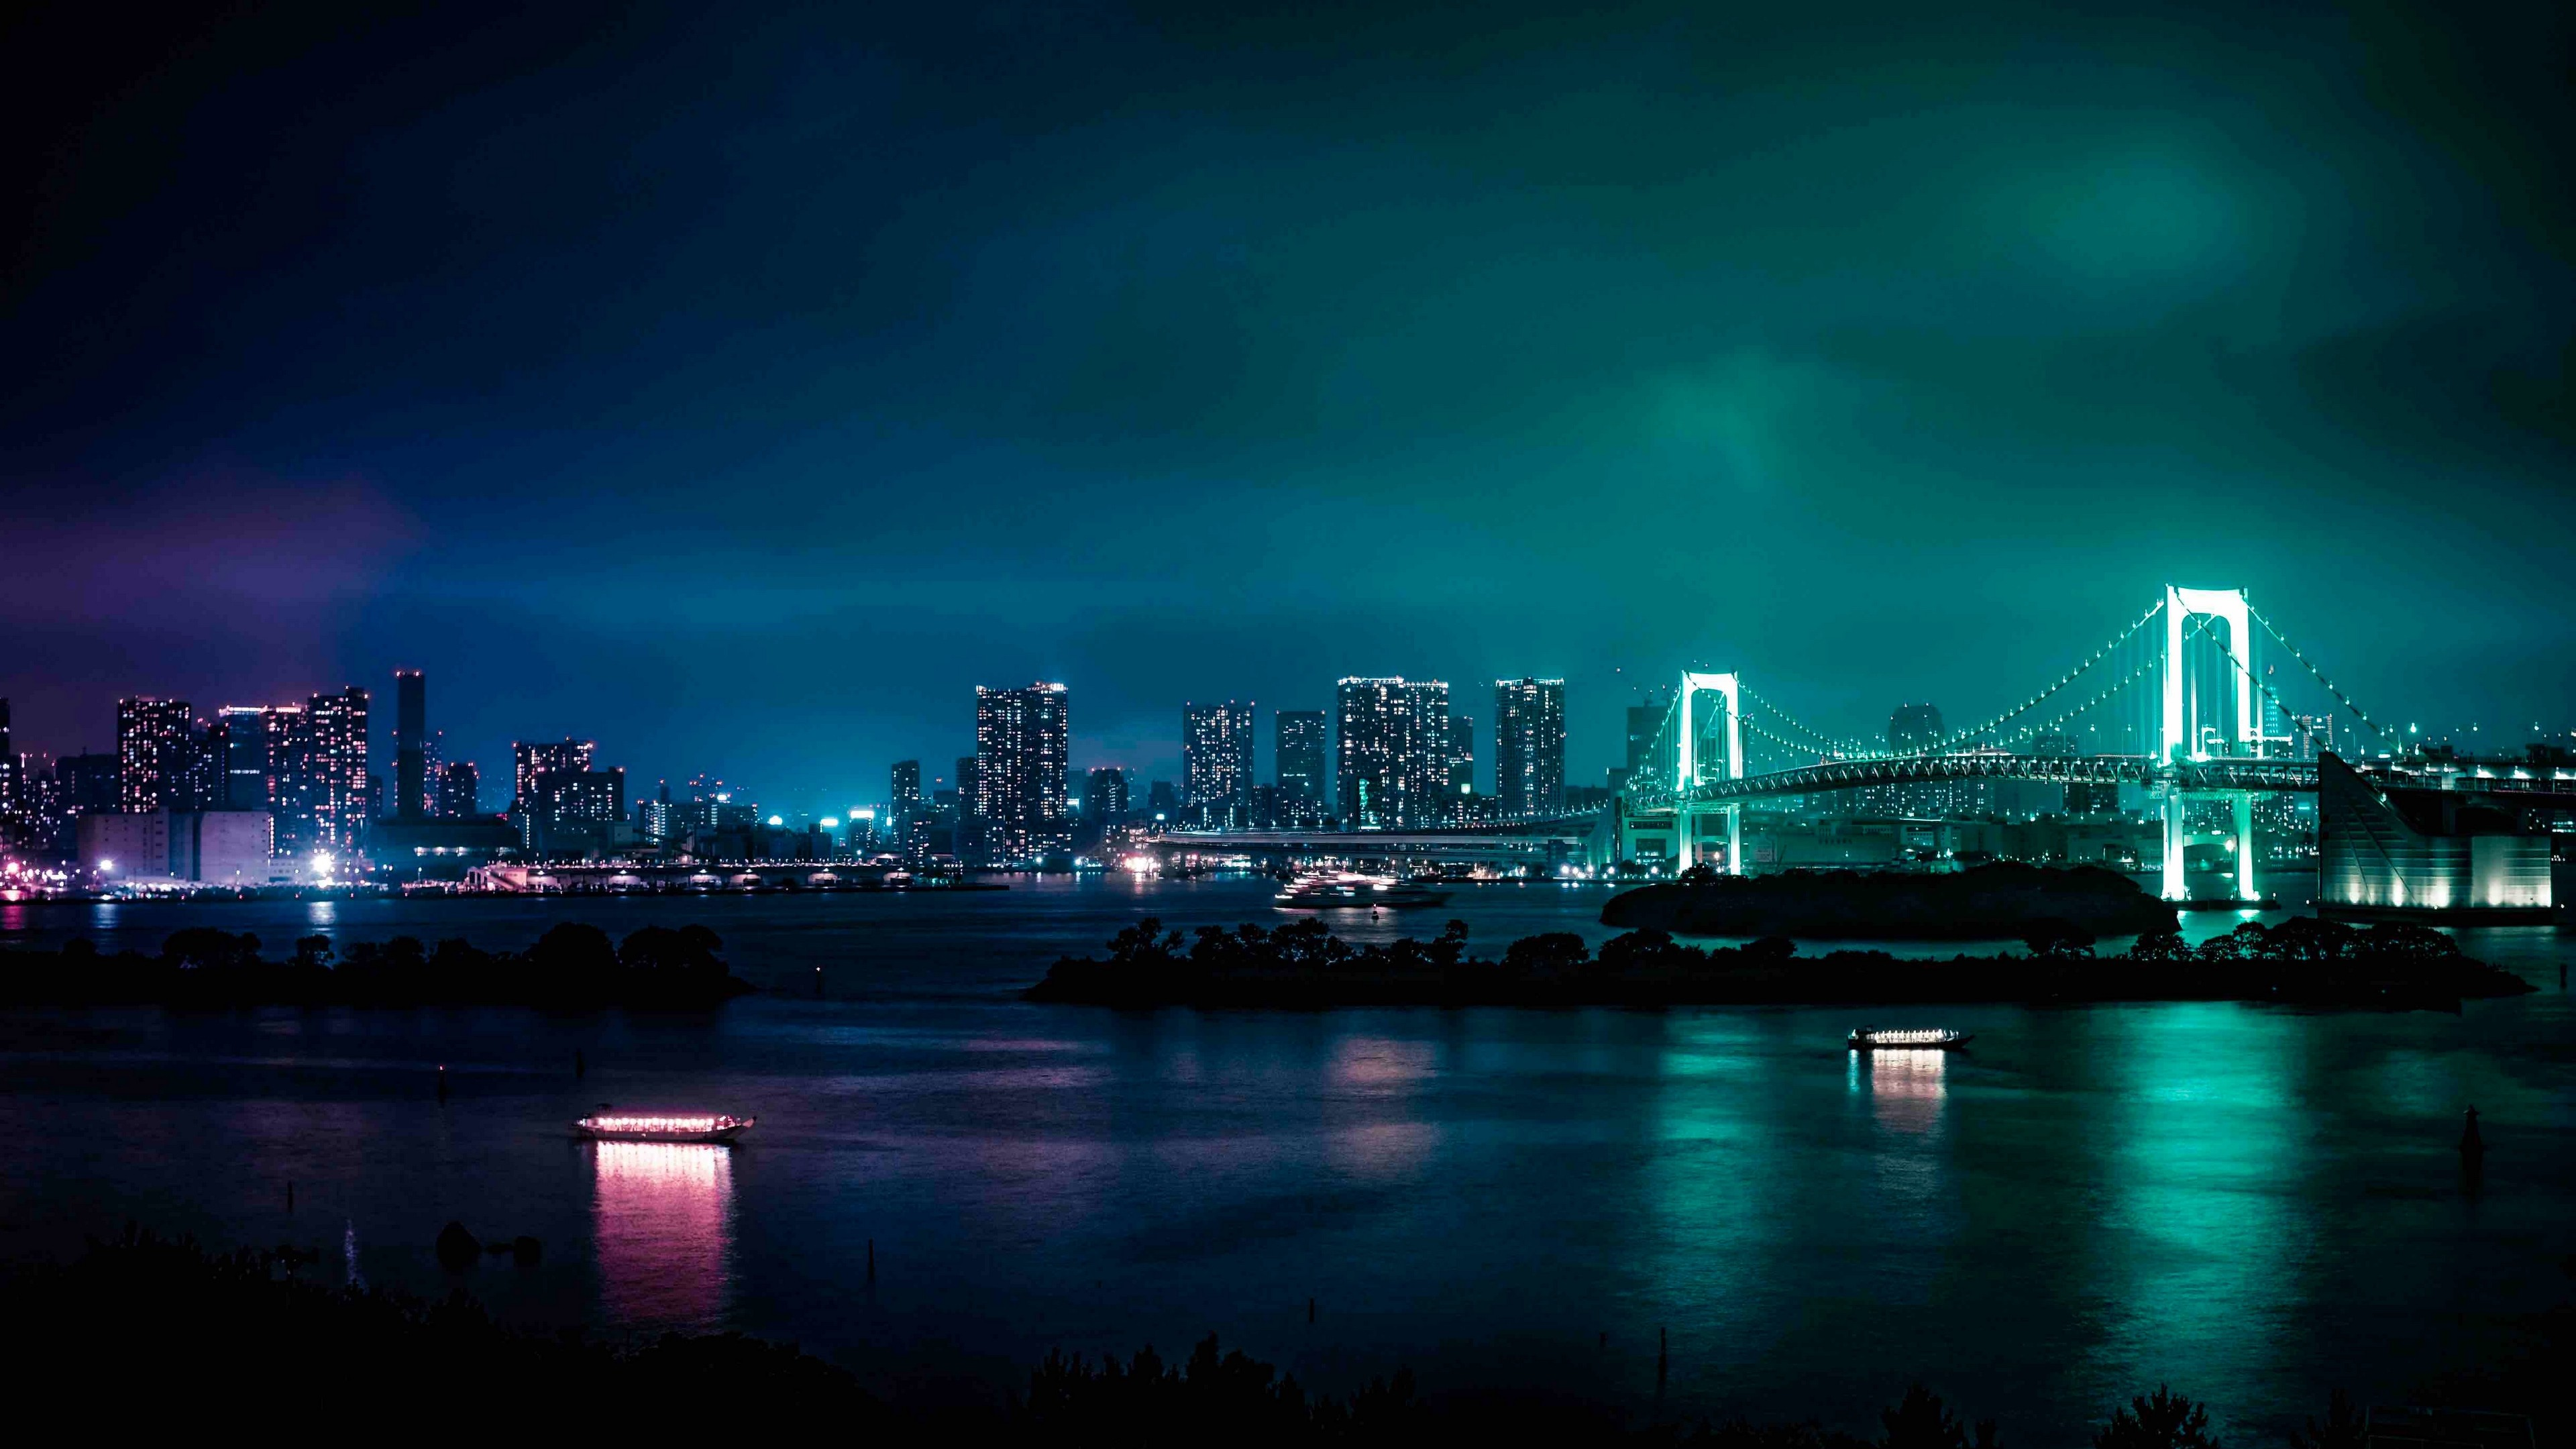 3840x2160  Wallpaper minato, japan, night city, bridge